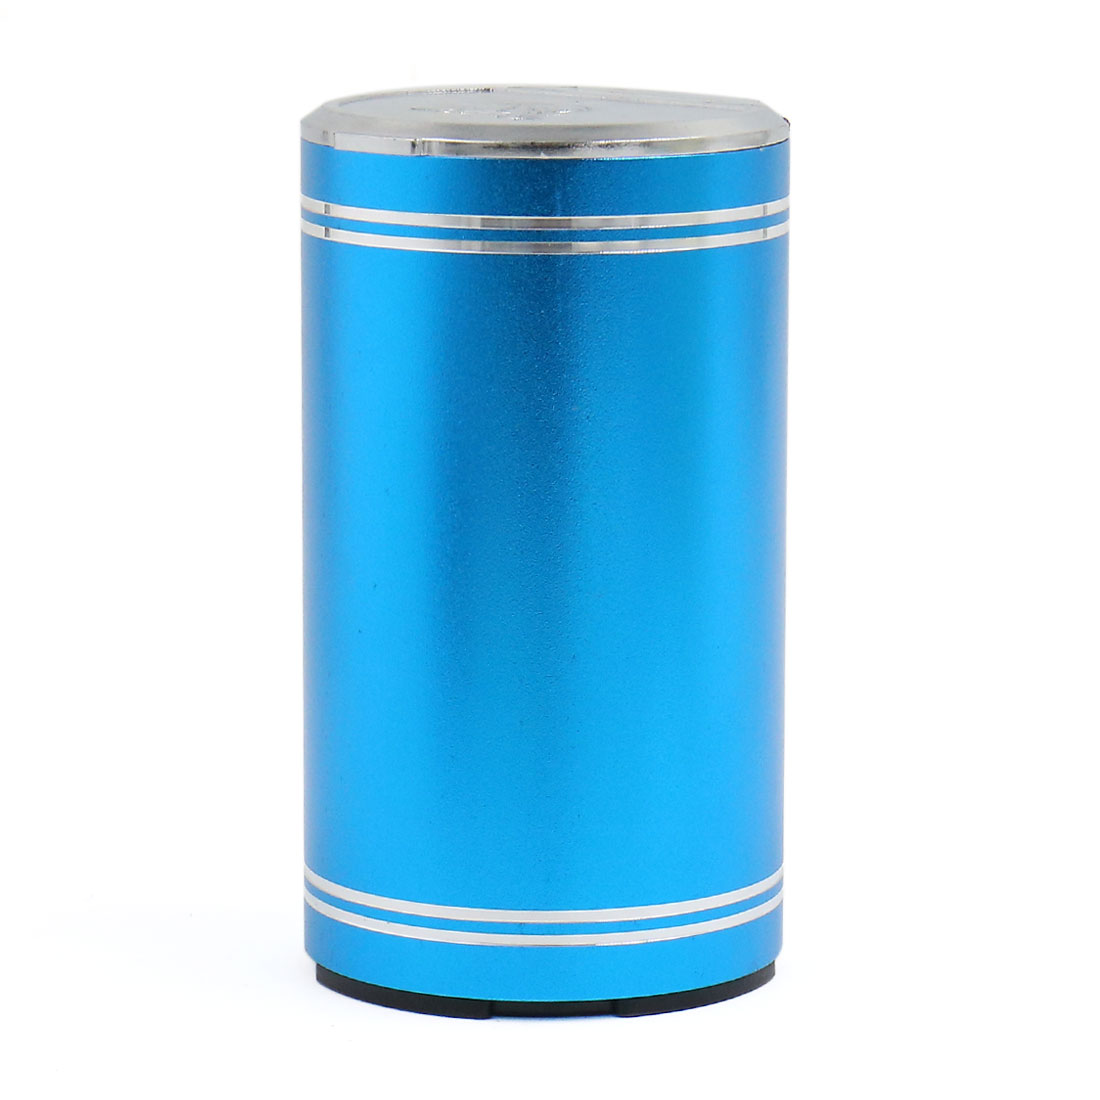 Car Blue Aluminum Alloy Cylinder Shaped Smokeless Ashtray Cigarette Ash Holder